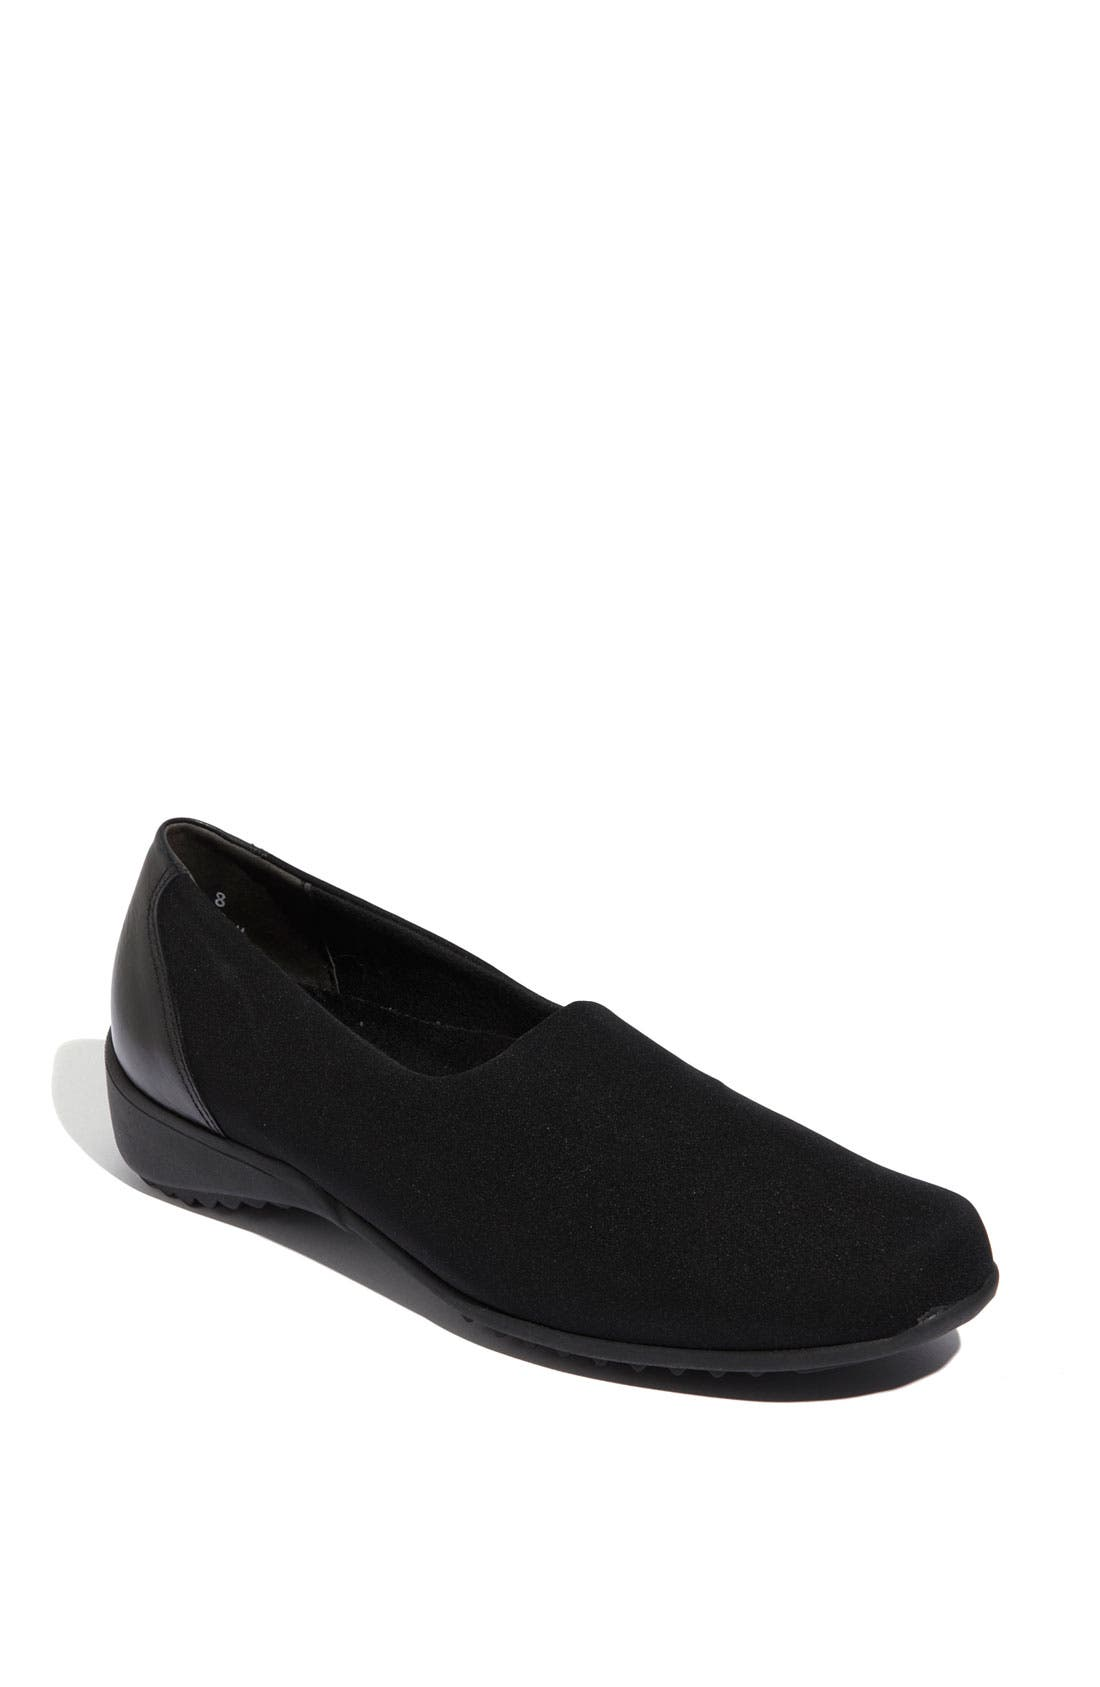 'TRAVELER' SLIP-ON